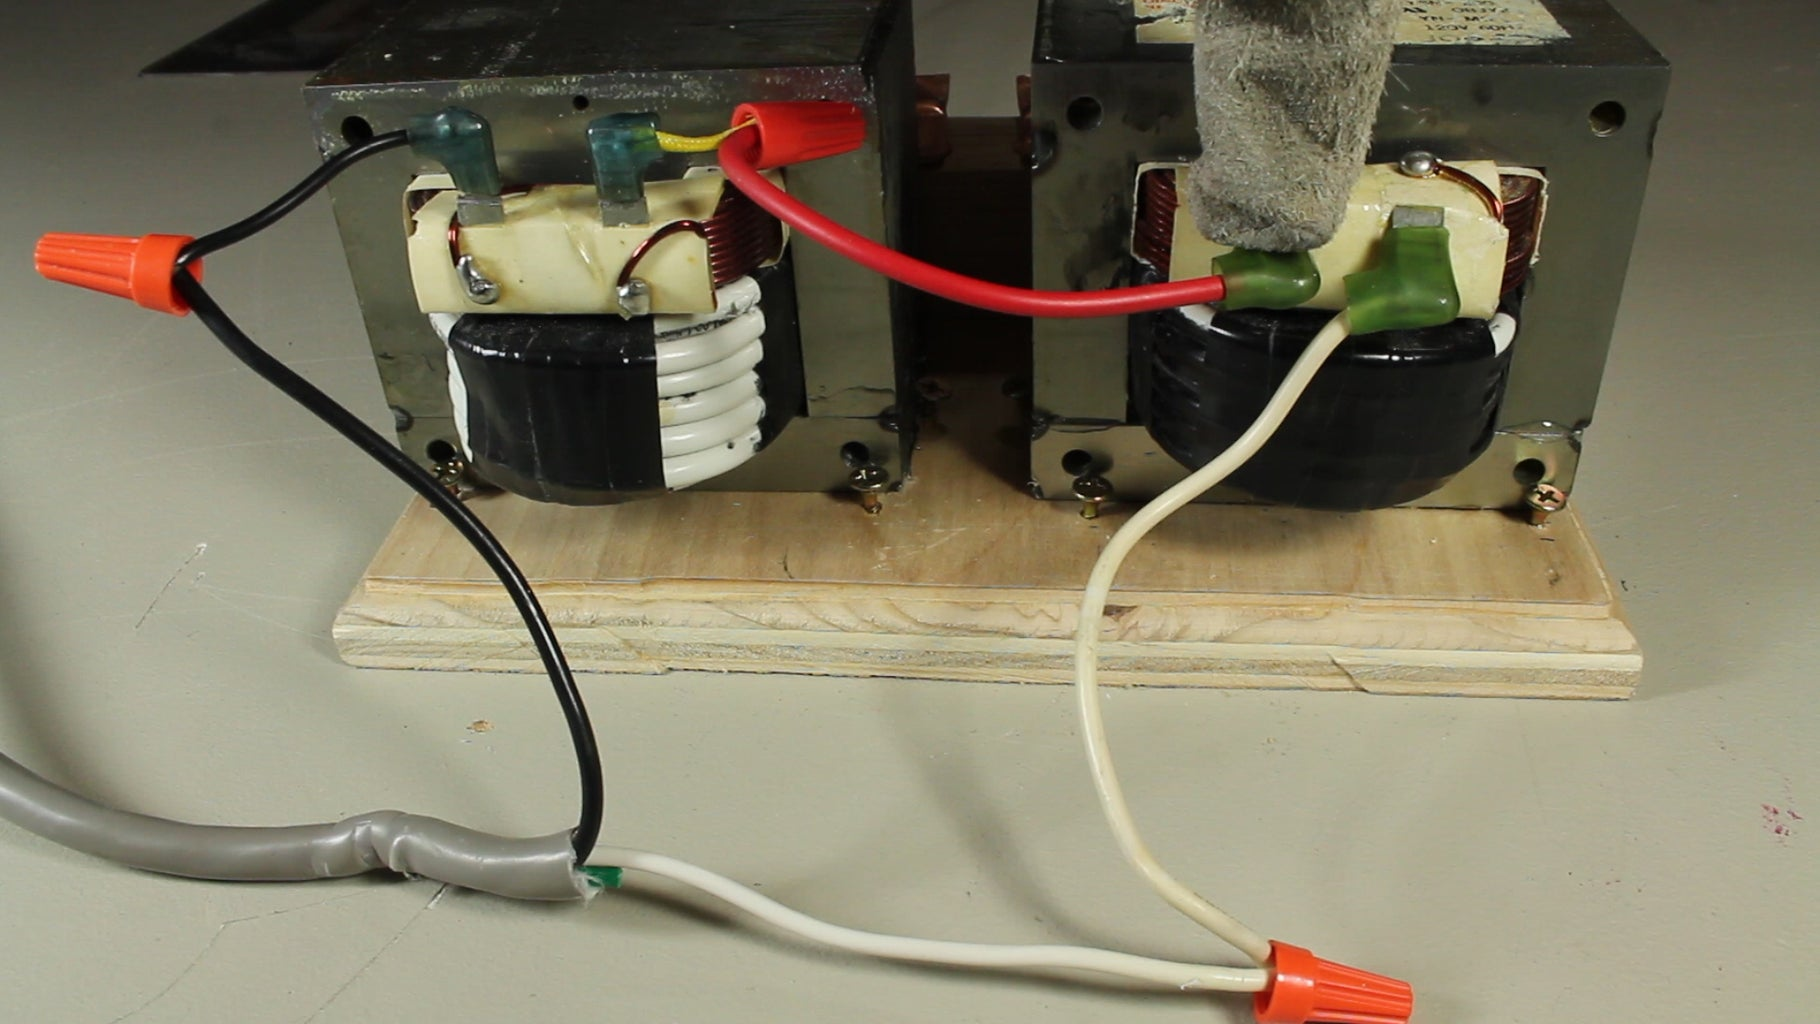 Wiring the Electrical System